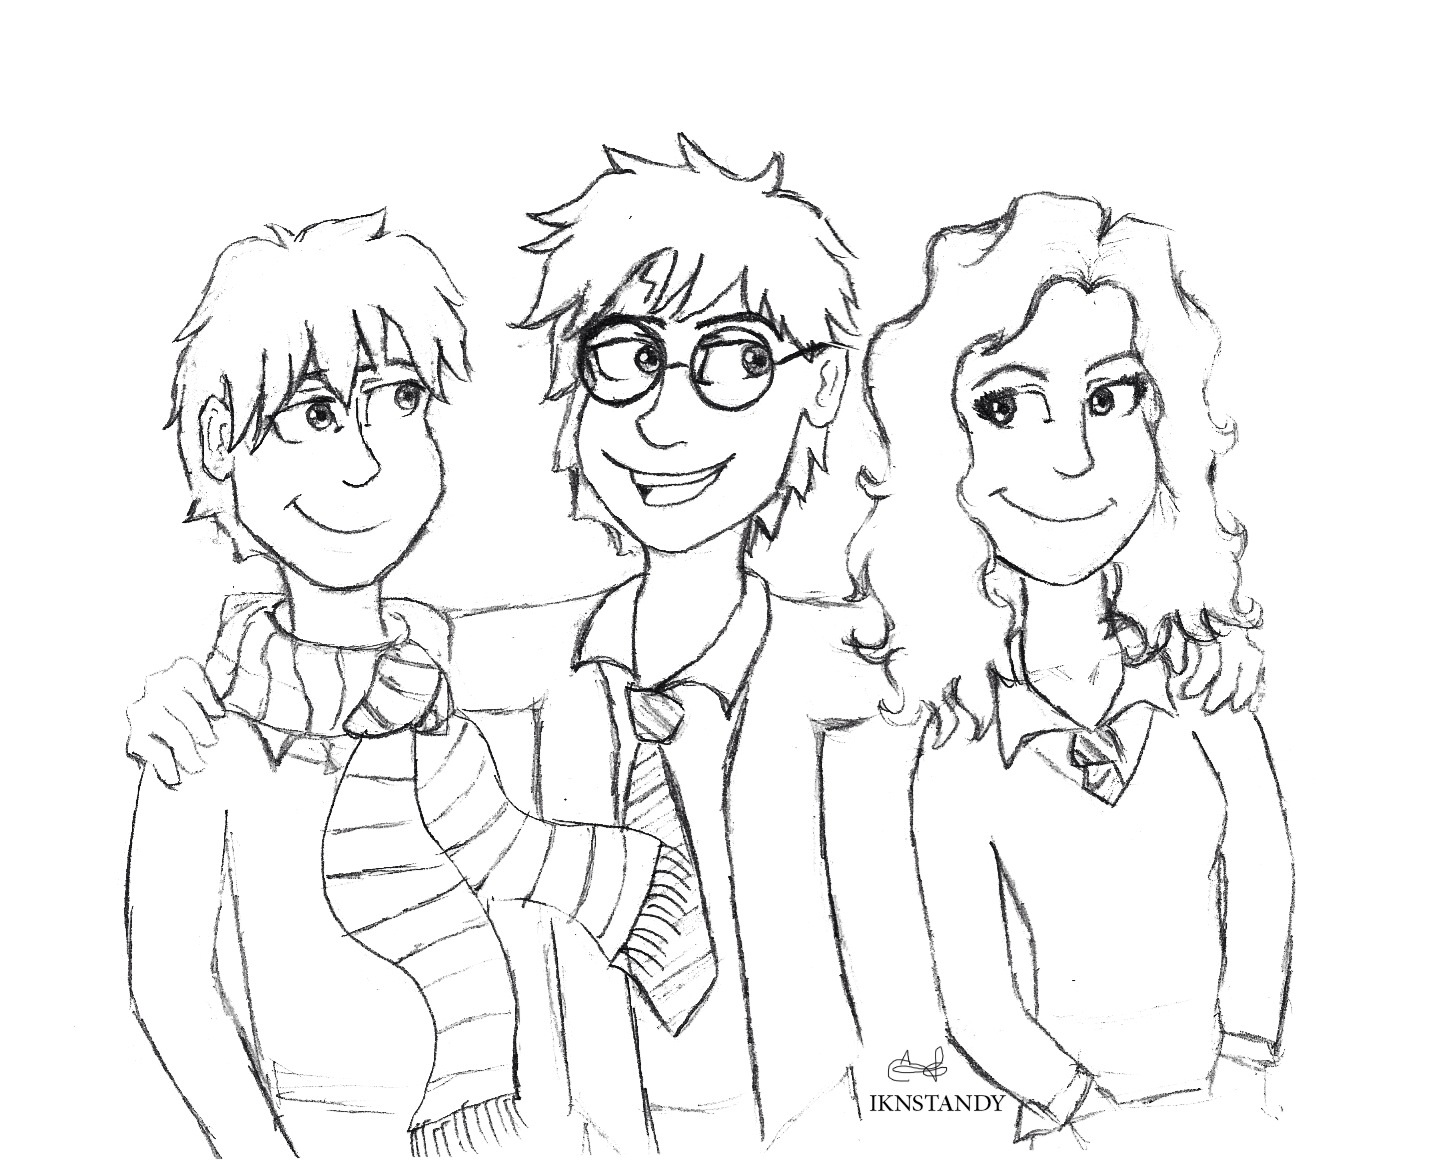 Harry Potter Squad Fan art by Inkstandy